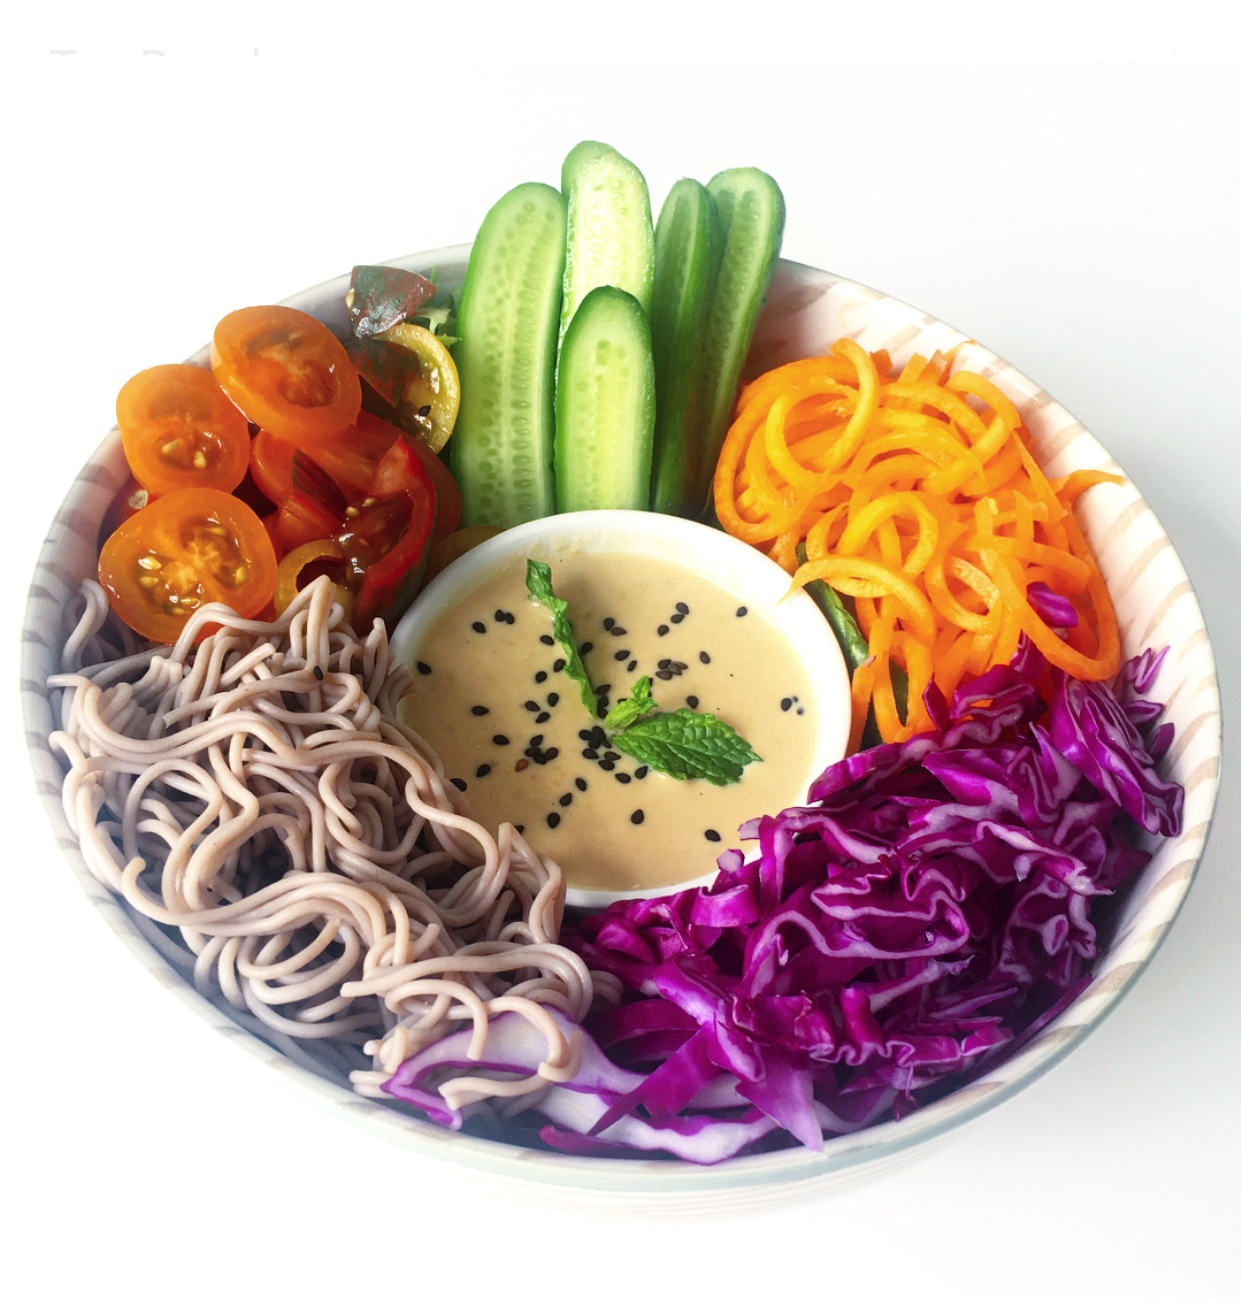 Crave-worthy Vegan and Gluten-Free Asian-style Sesame Noodle bowl. The secret sauce is creamy, raw and ADDICTIVE. Don't say I didn't warn you :)